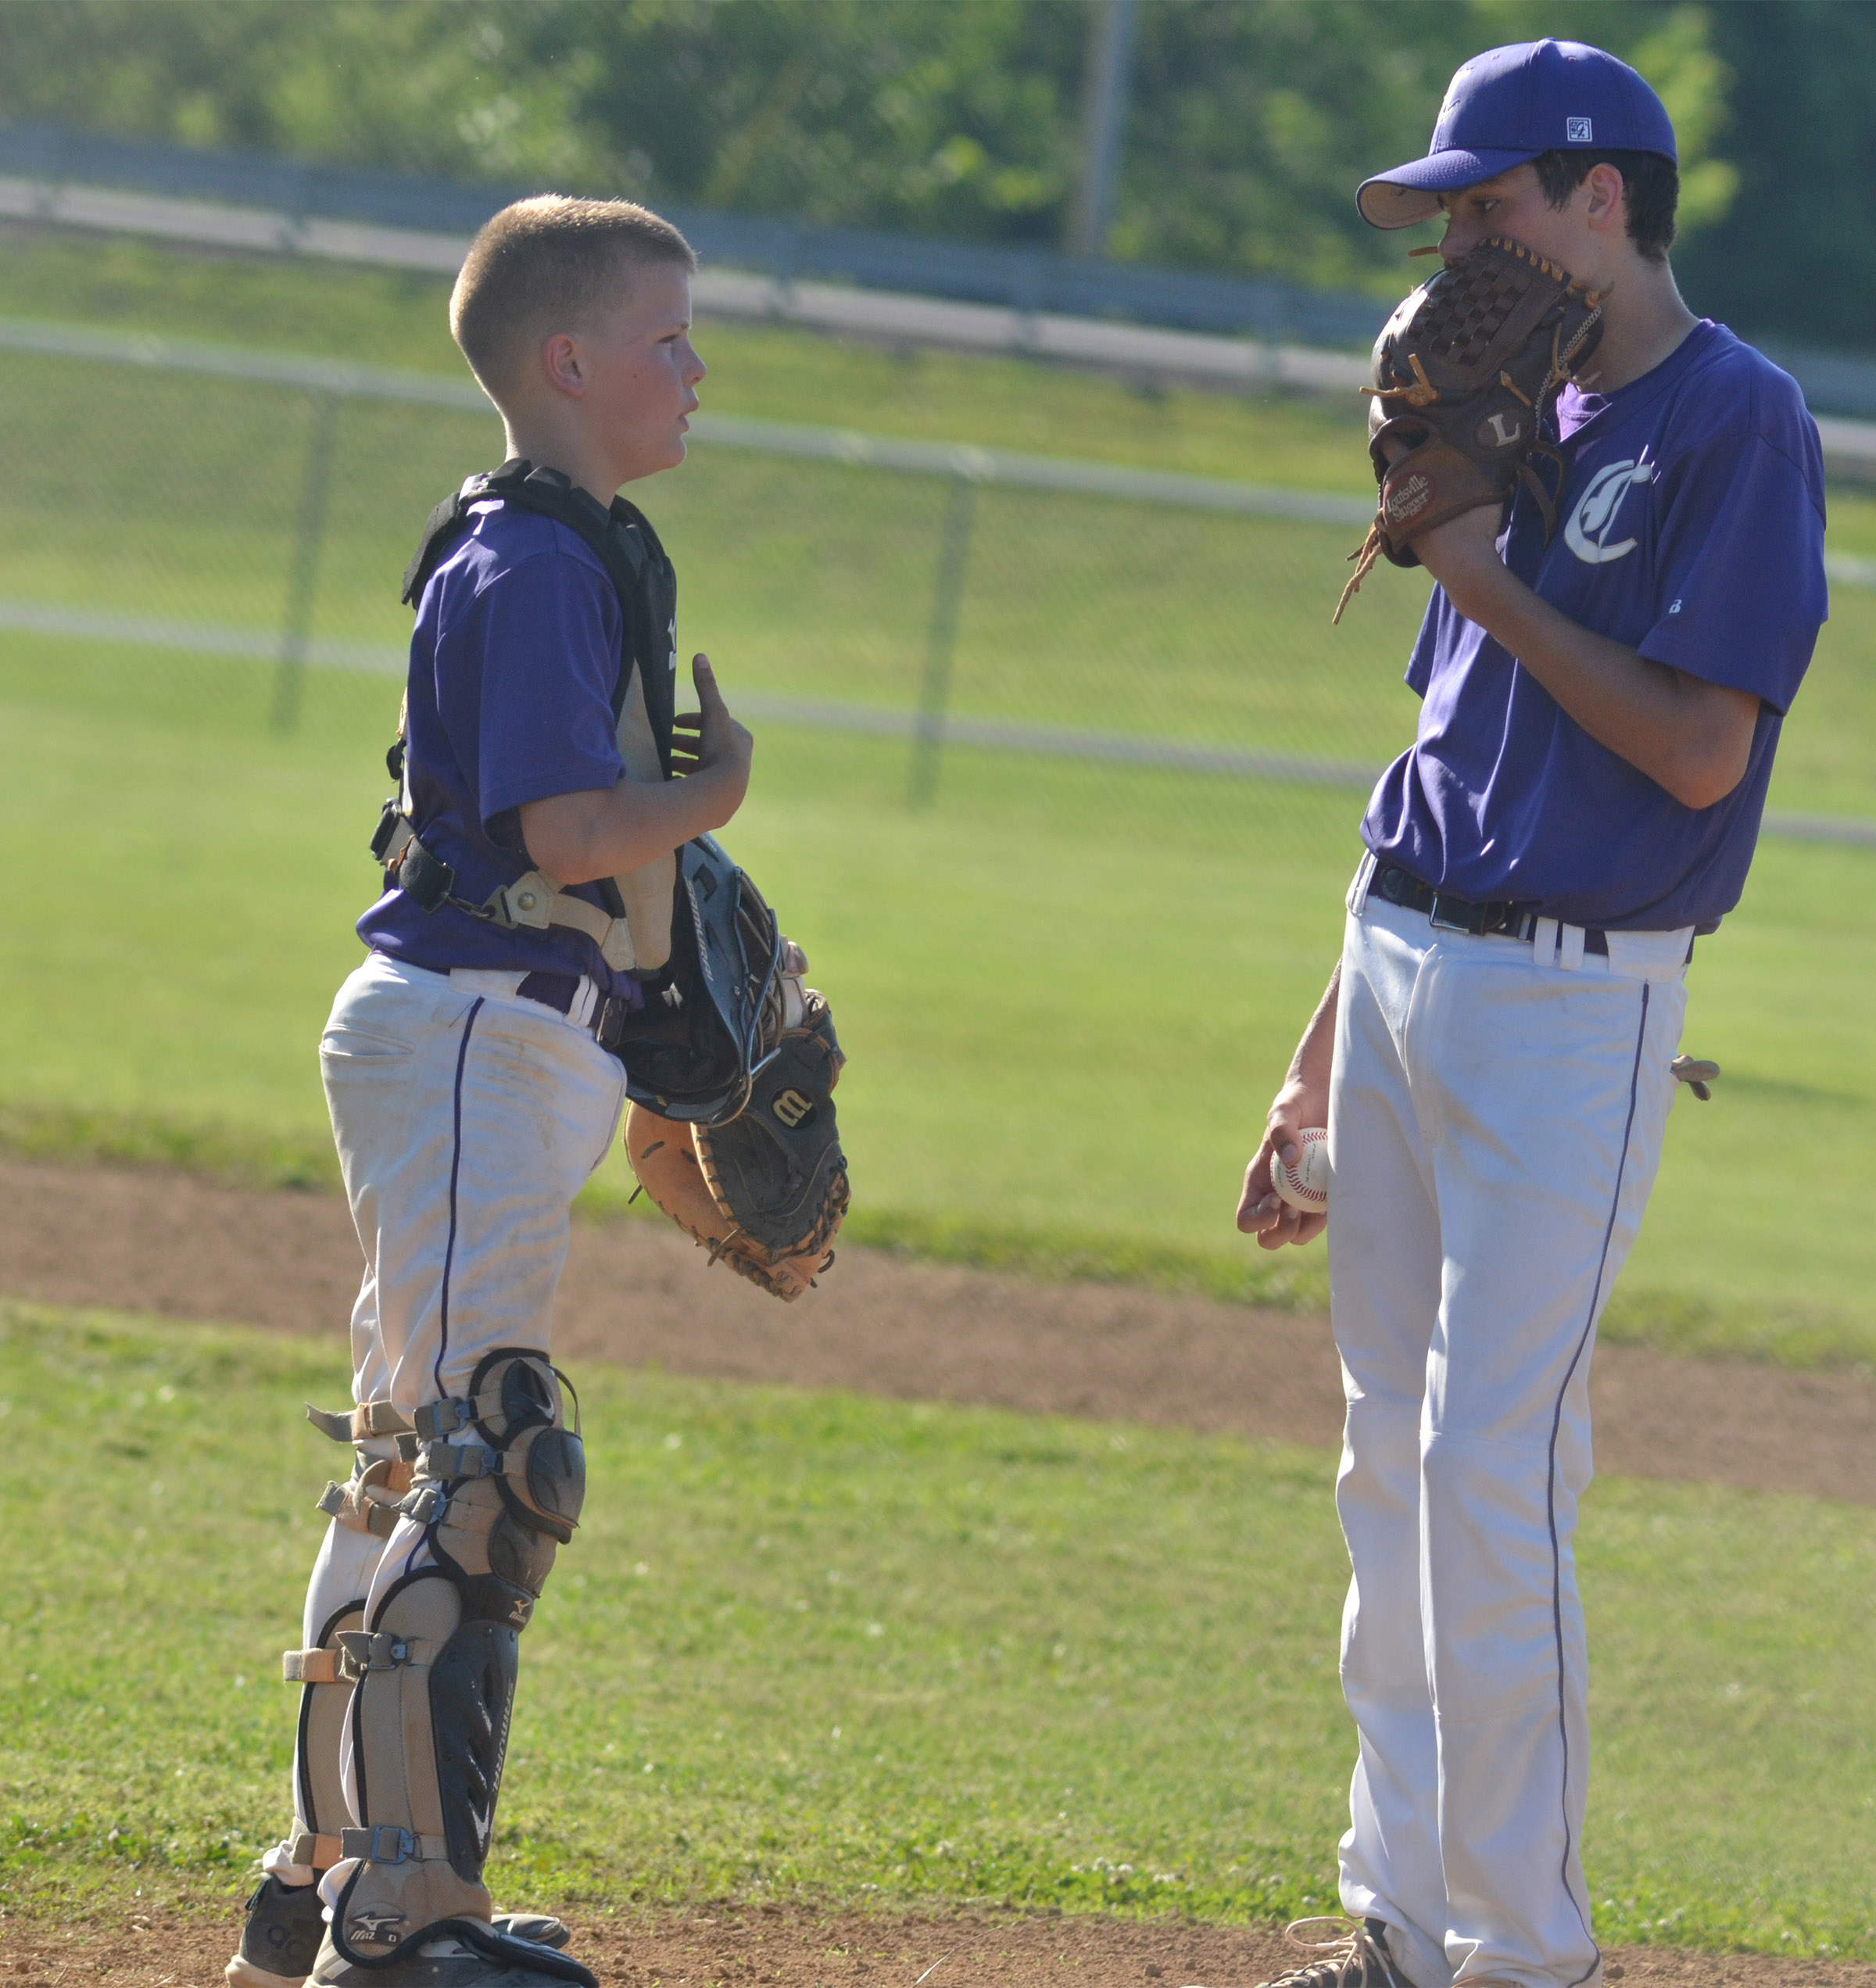 CMS sixth-grader Konner Forbis talks to eighth-grader Kameron Smith as he gets set to pitch.